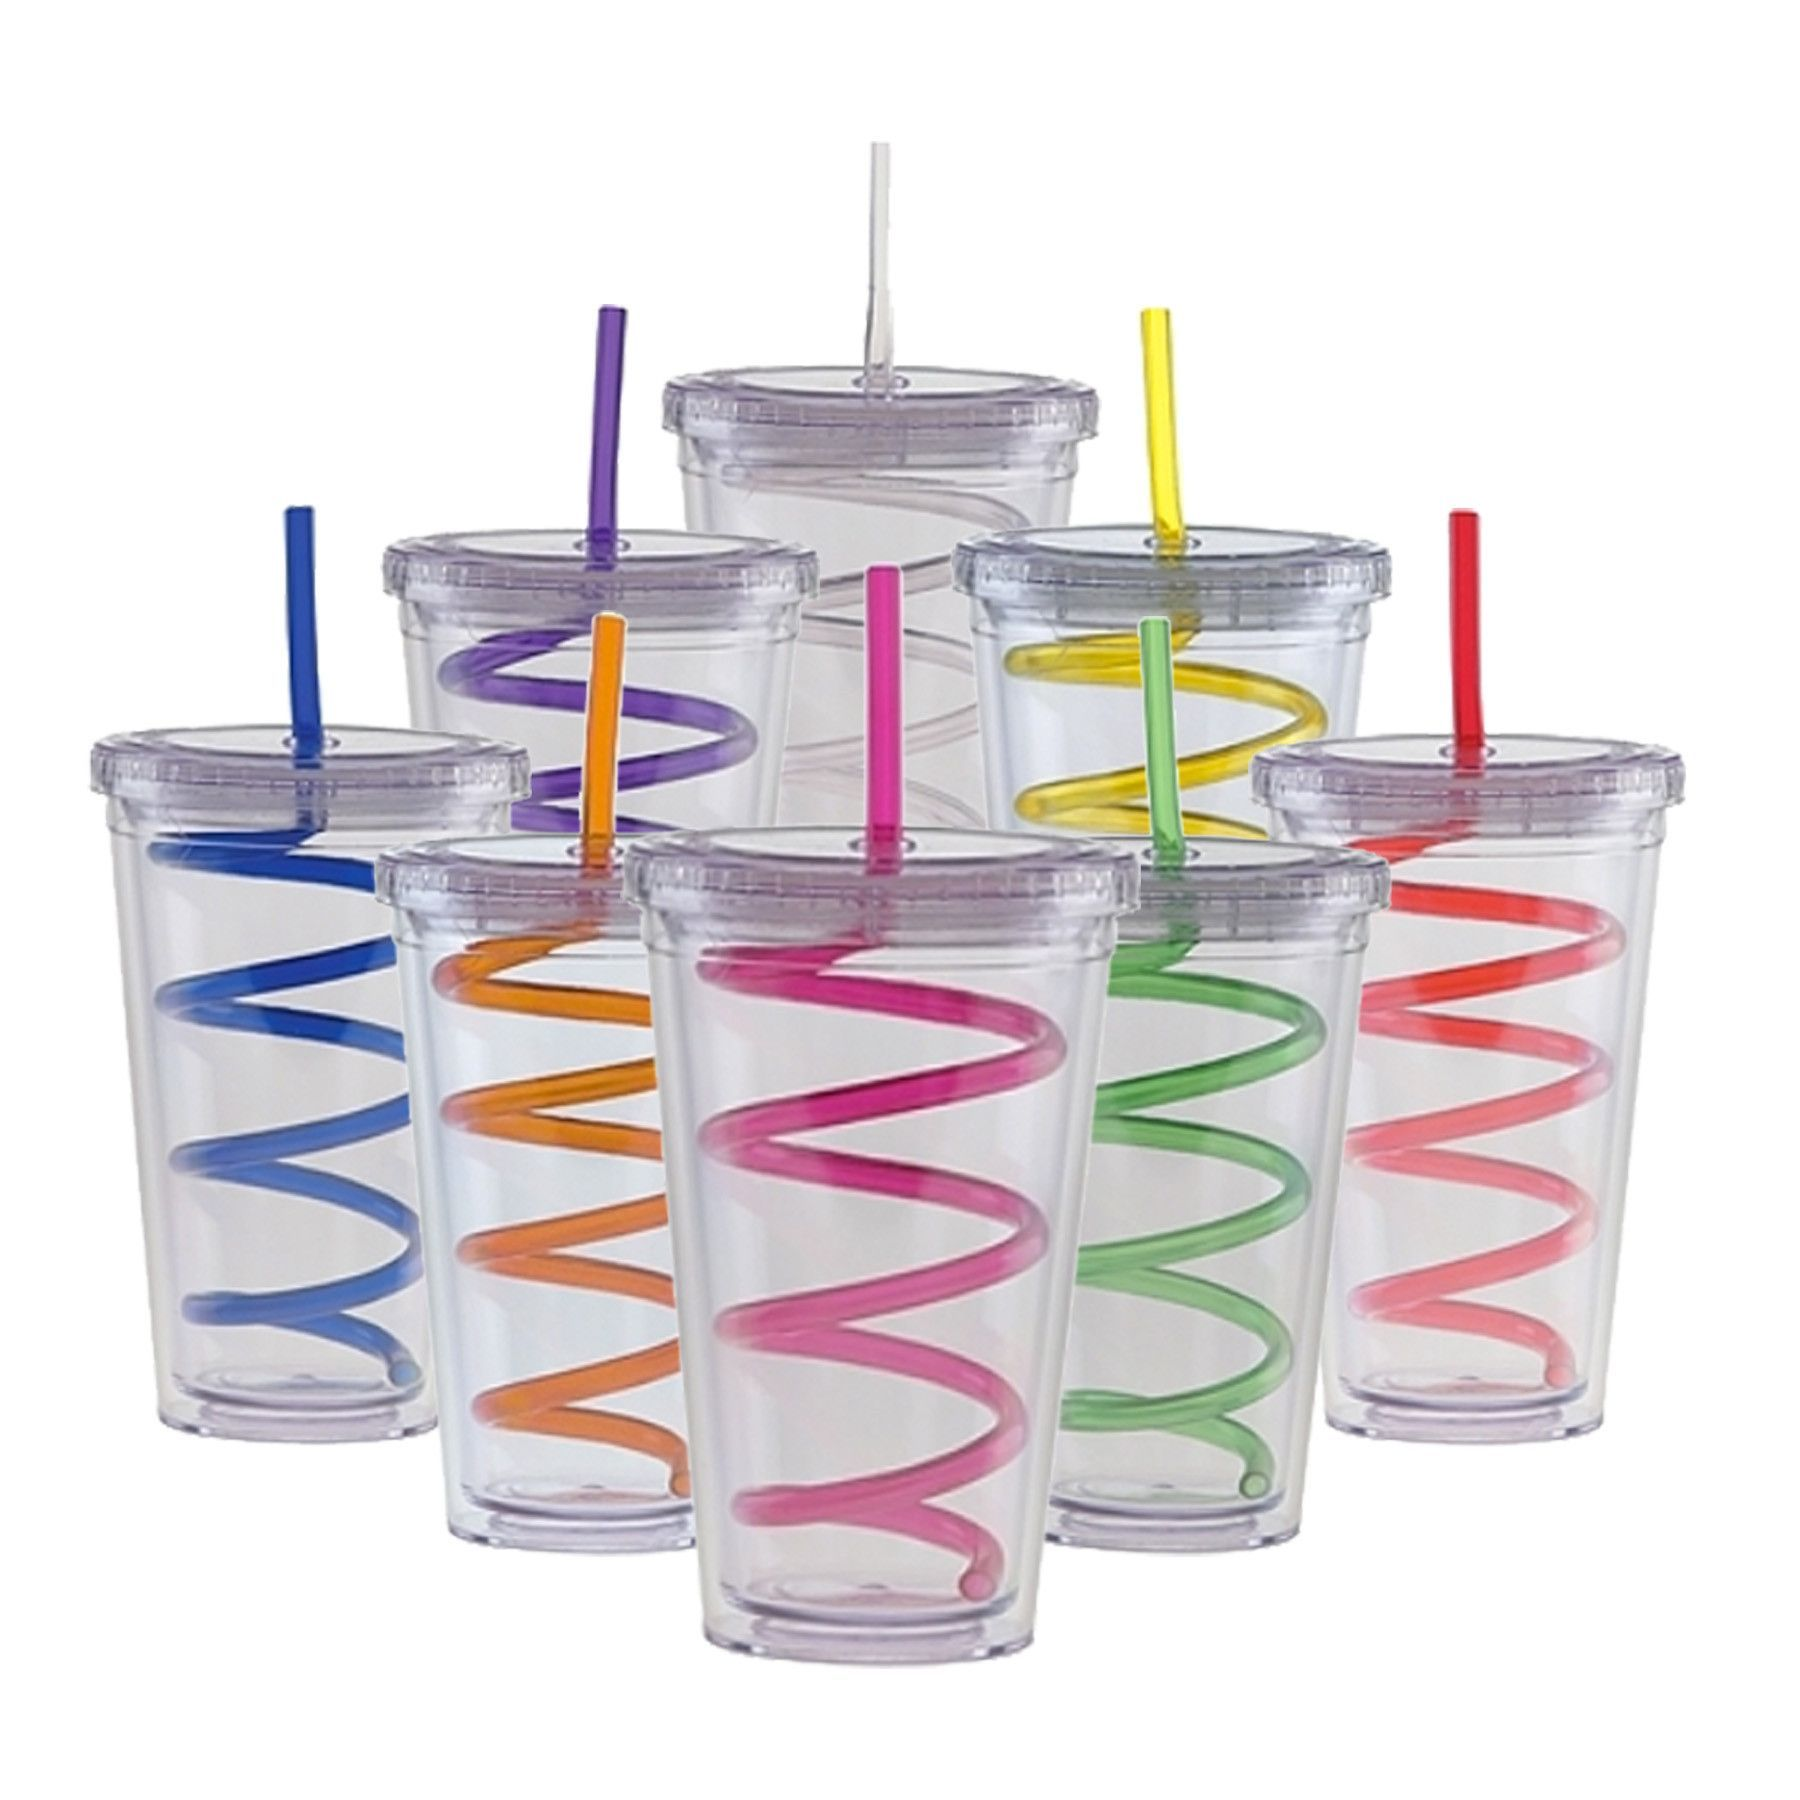 Blank 20 Oz Double Wall Clear Tumbler With Lid And Swirly Straw Clear Tumblers Tumbler Cups Diy Tumblers With Lids